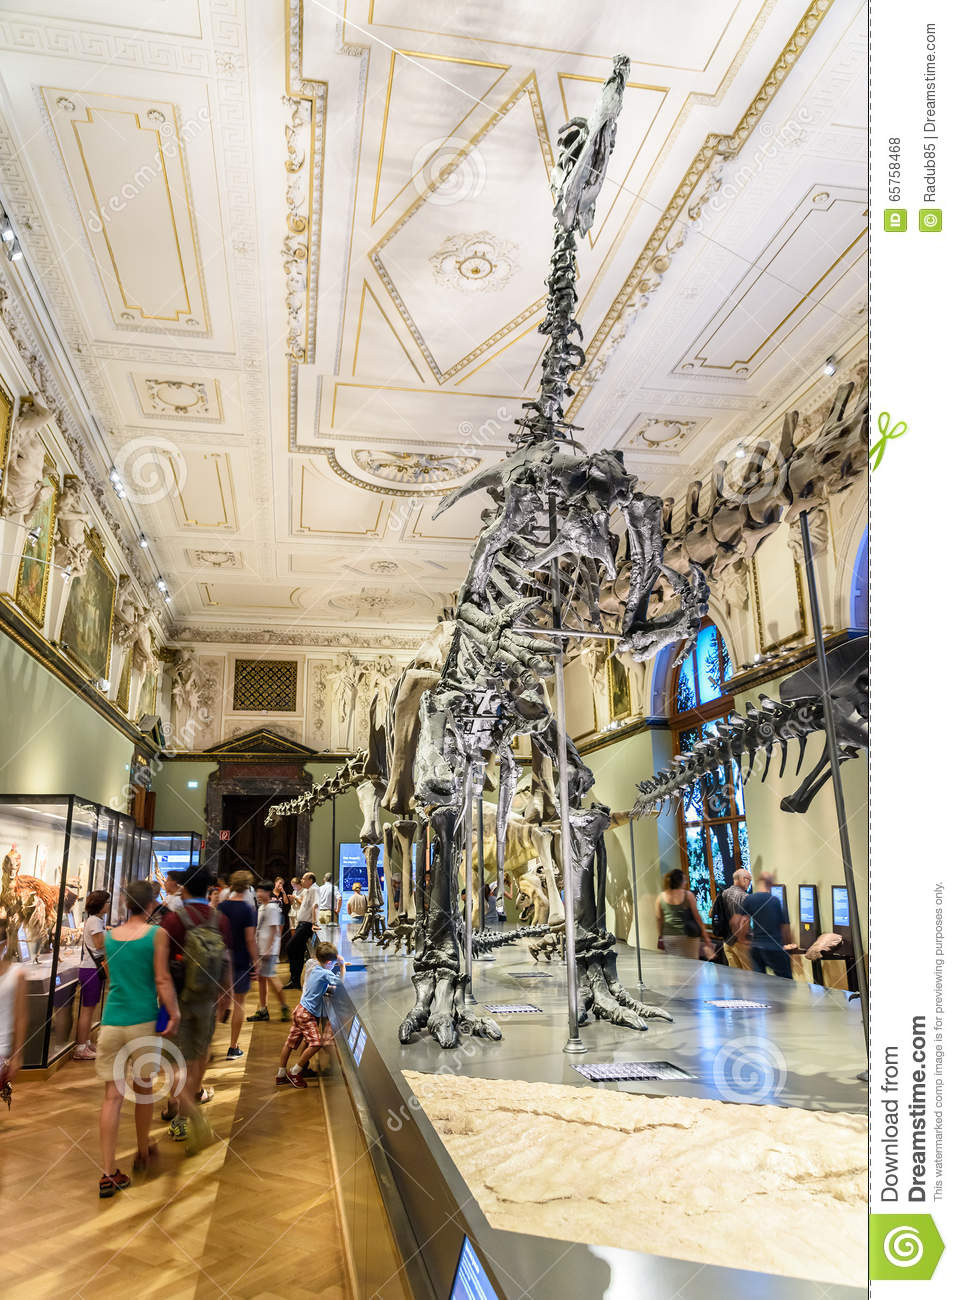 history museum visit essay Completing a virtual art museum visit discuss the relevance and/or influence of each work to history do you want your assignment written by the best essay.